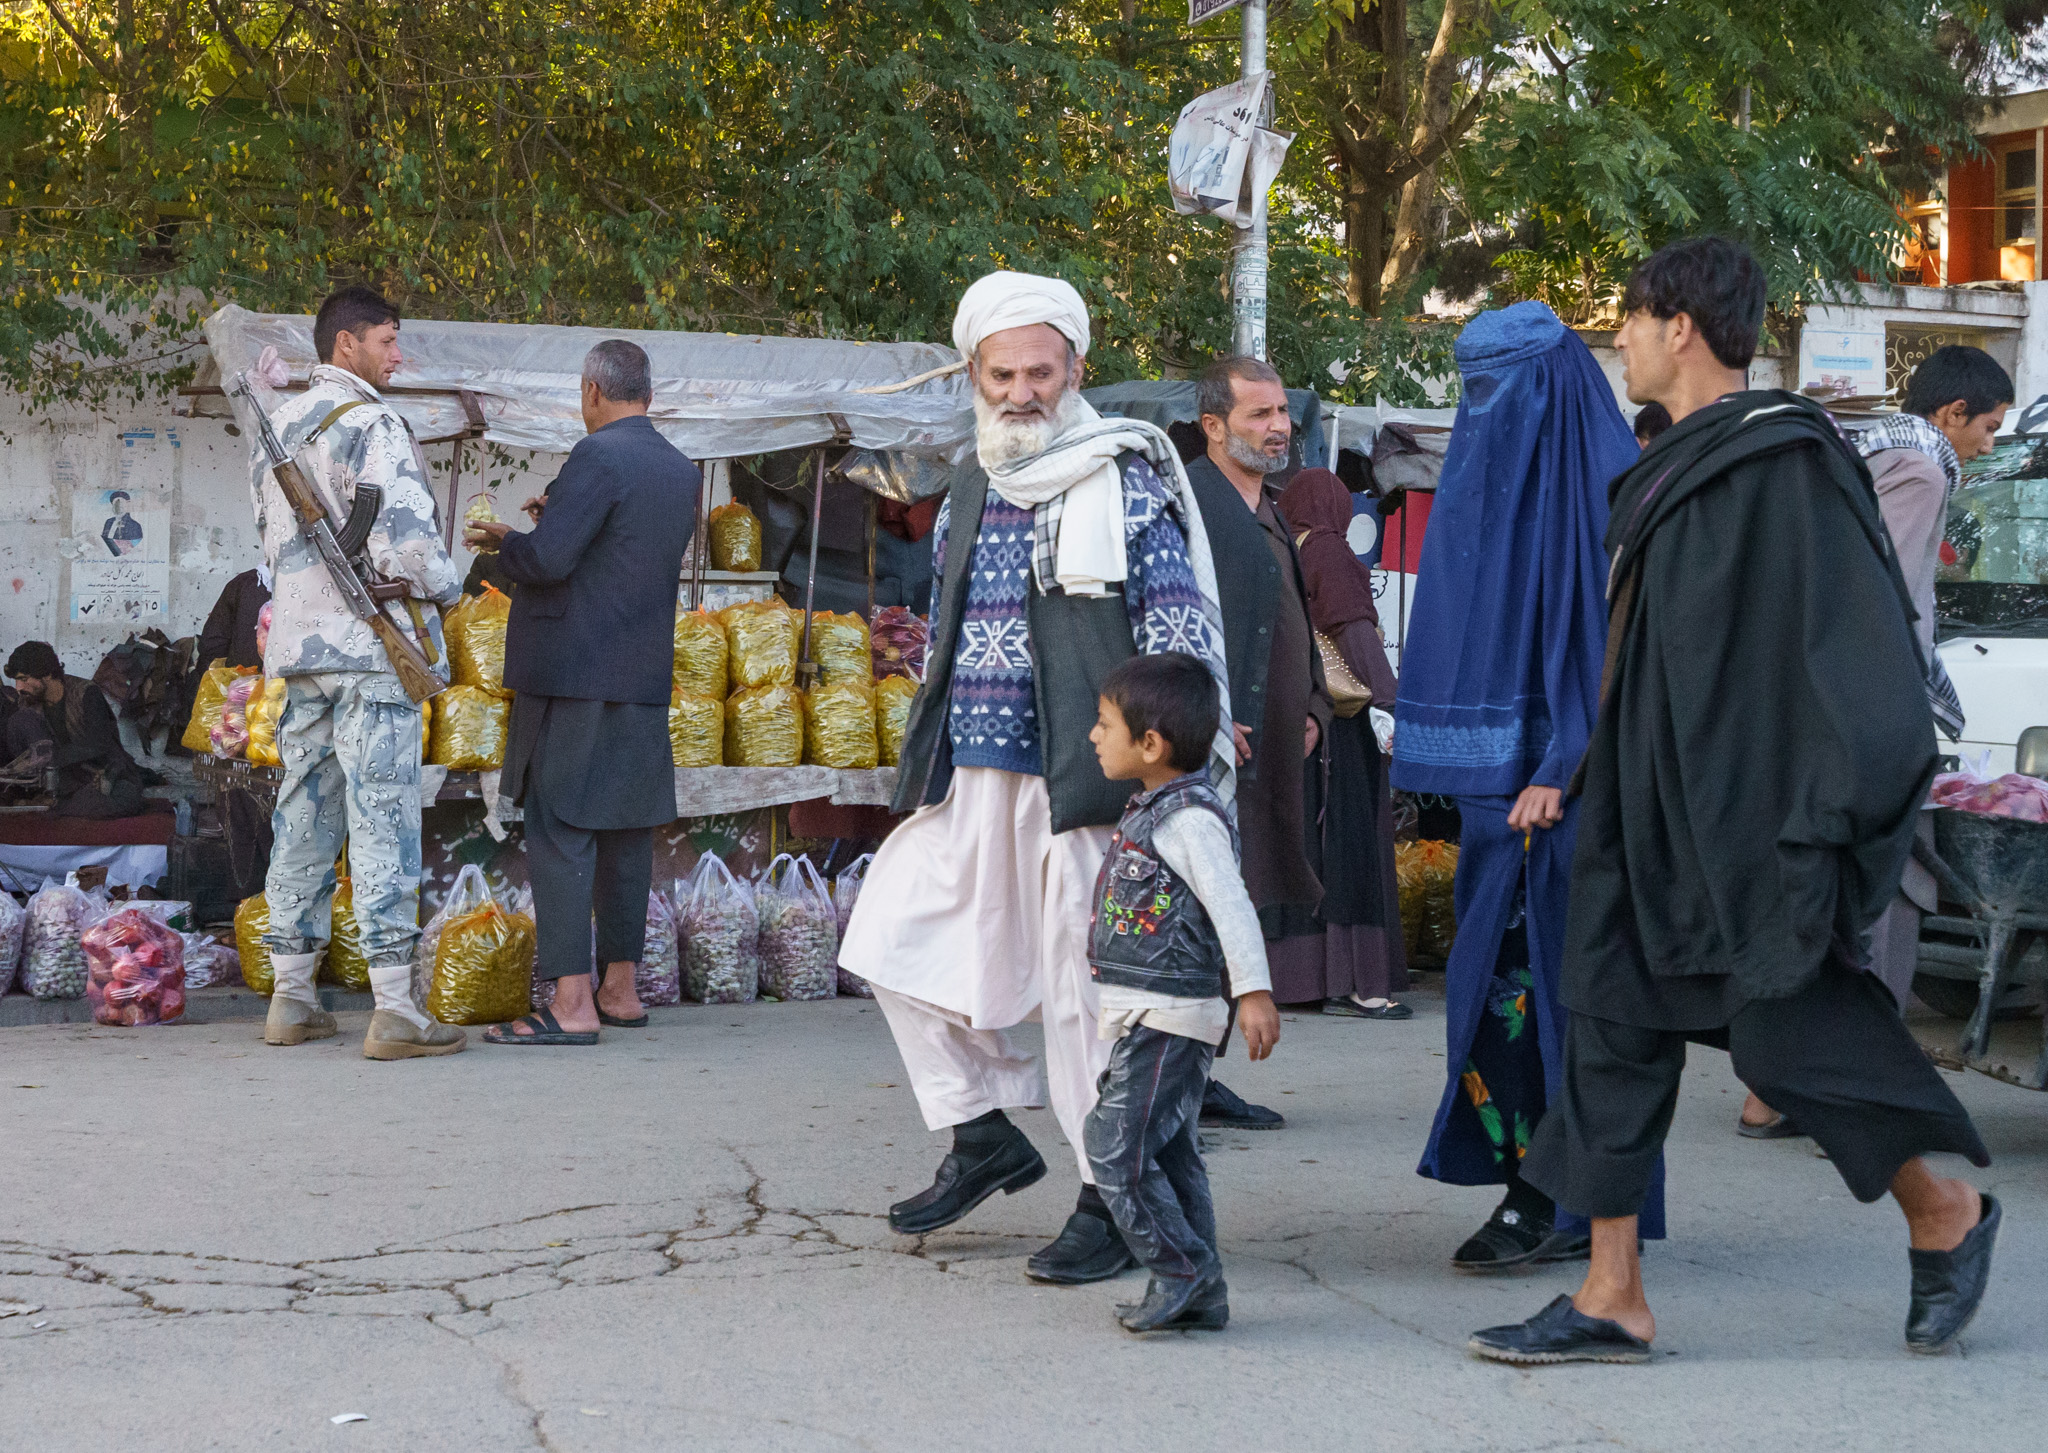 Typical street scene in Afghanistan. Notice the AK-47? Hope you're not afraid of guns!